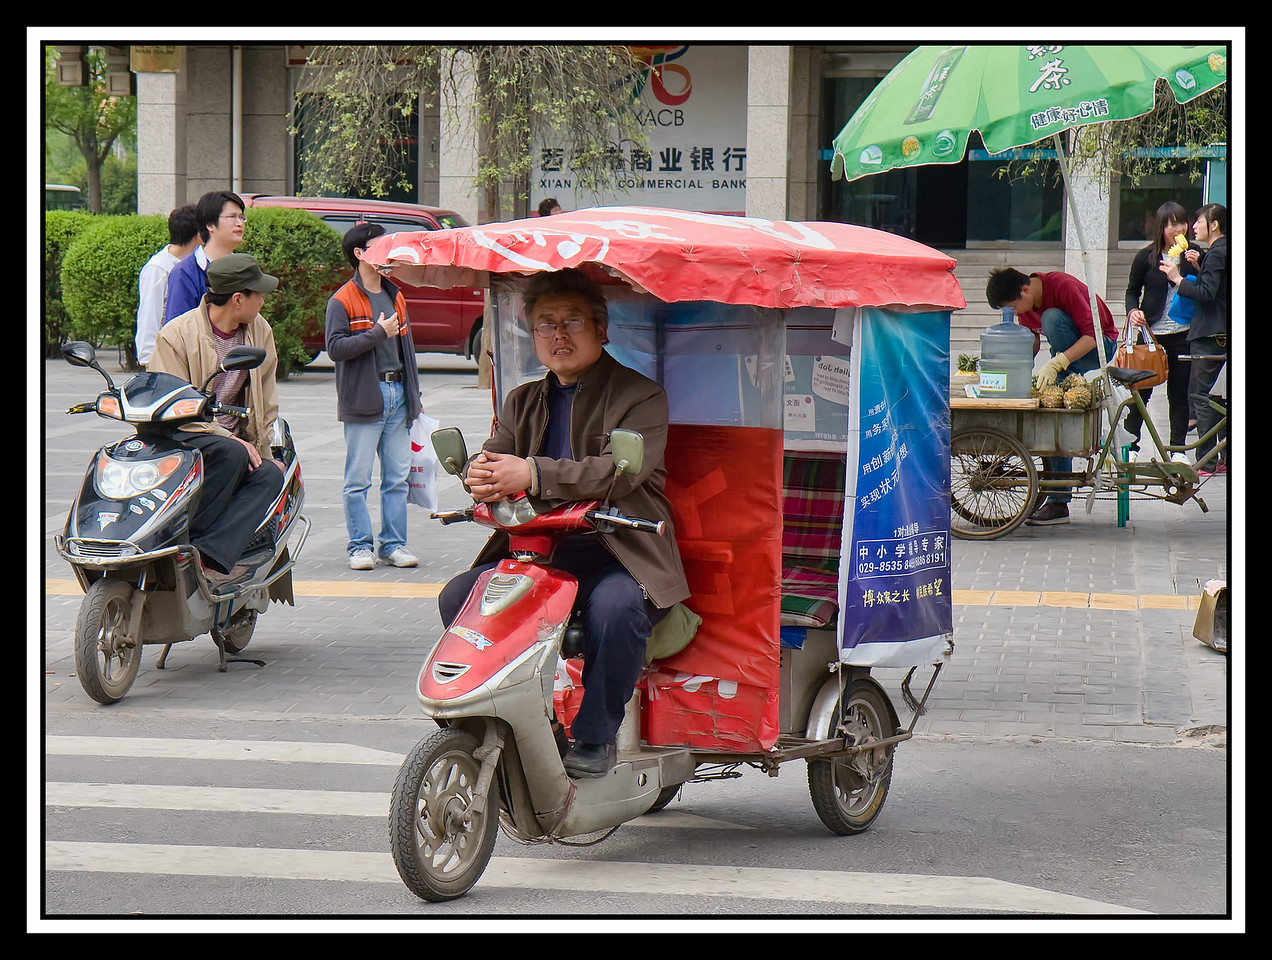 IMAGE: https://photos.smugmug.com/Travel/CHINA-FOCUS-TOUR-2010-XIAN/i-7hV2qxc/0/c3c35703/X2/0848%20%20Street%20Scene%20motorcycle%20taxi-X2.jpg